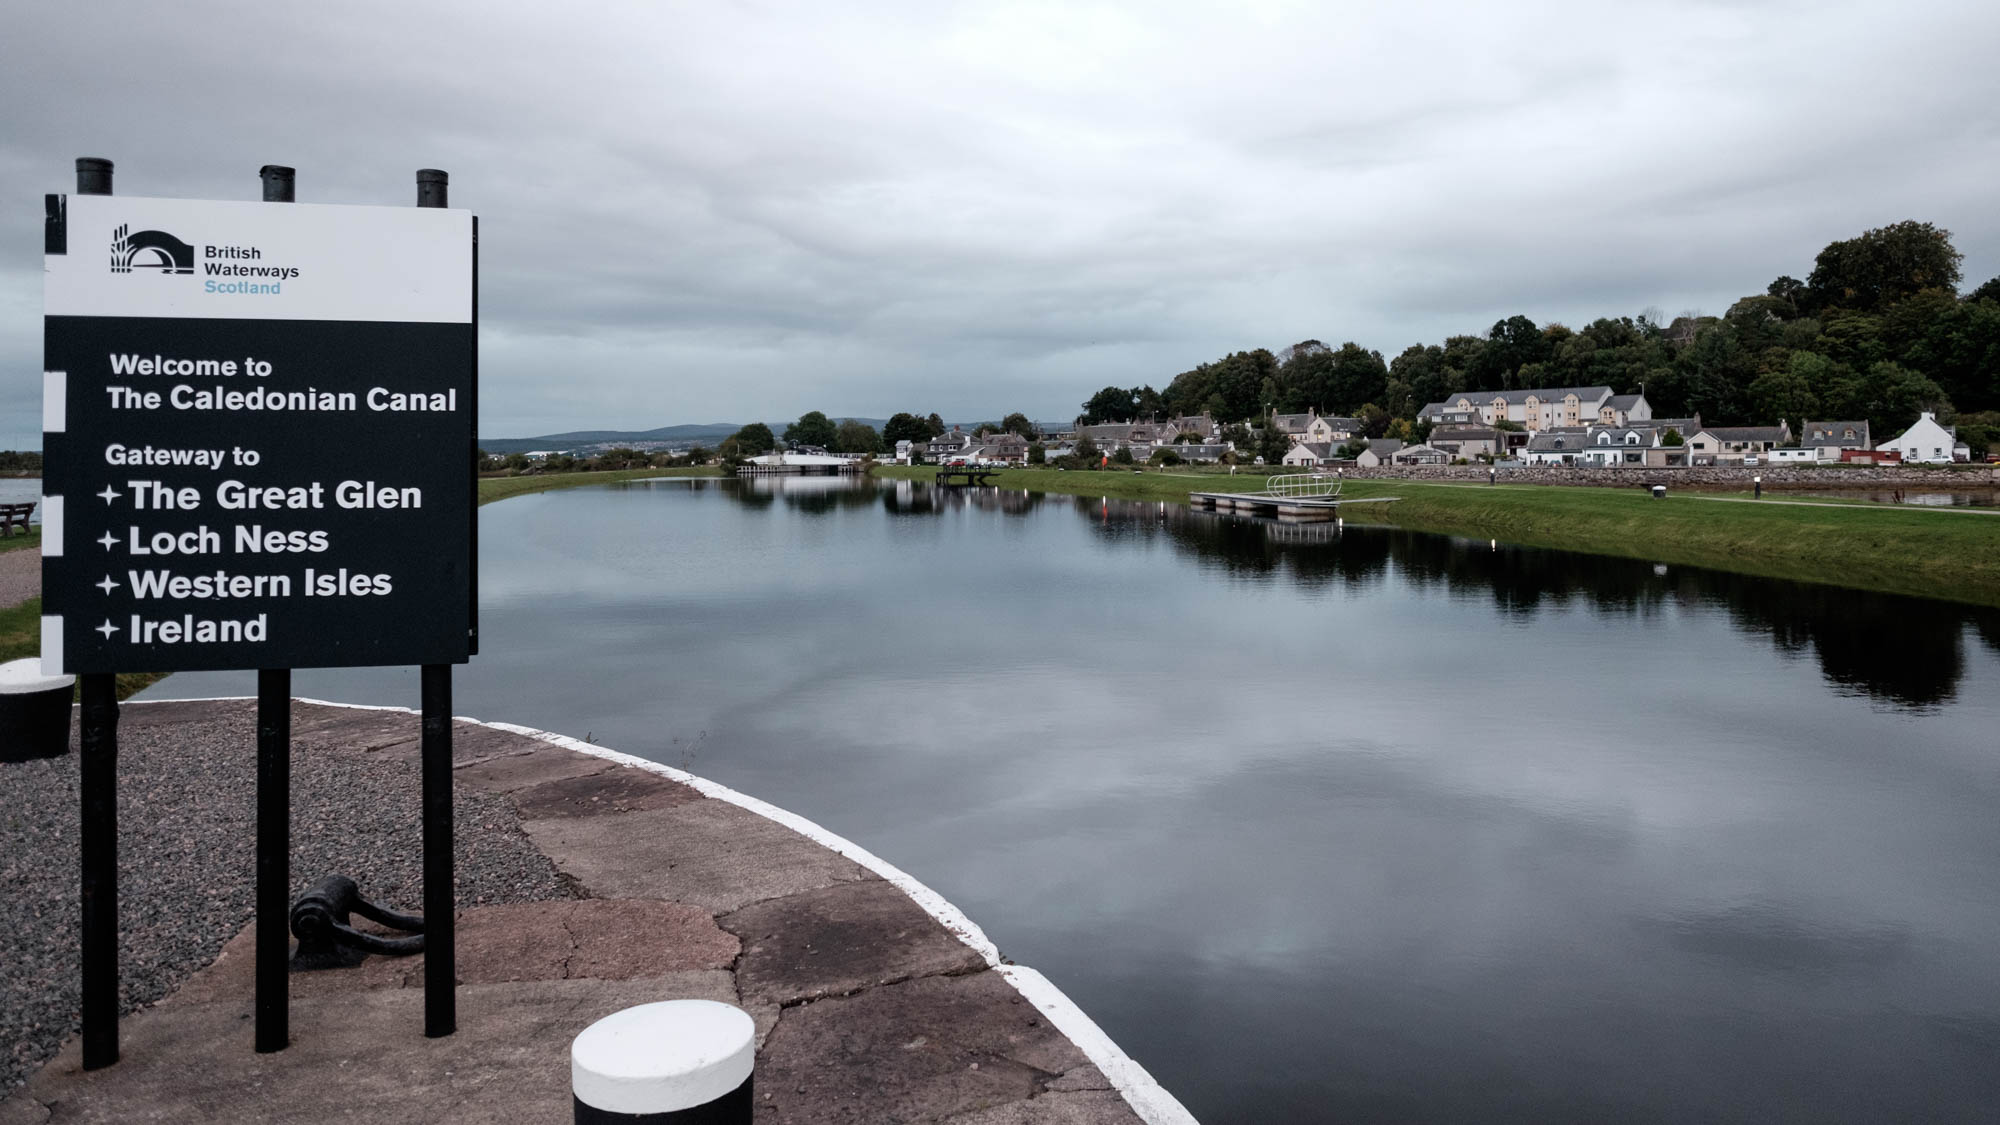 Nördliche Ende des Caledonian Canal bei Inverness